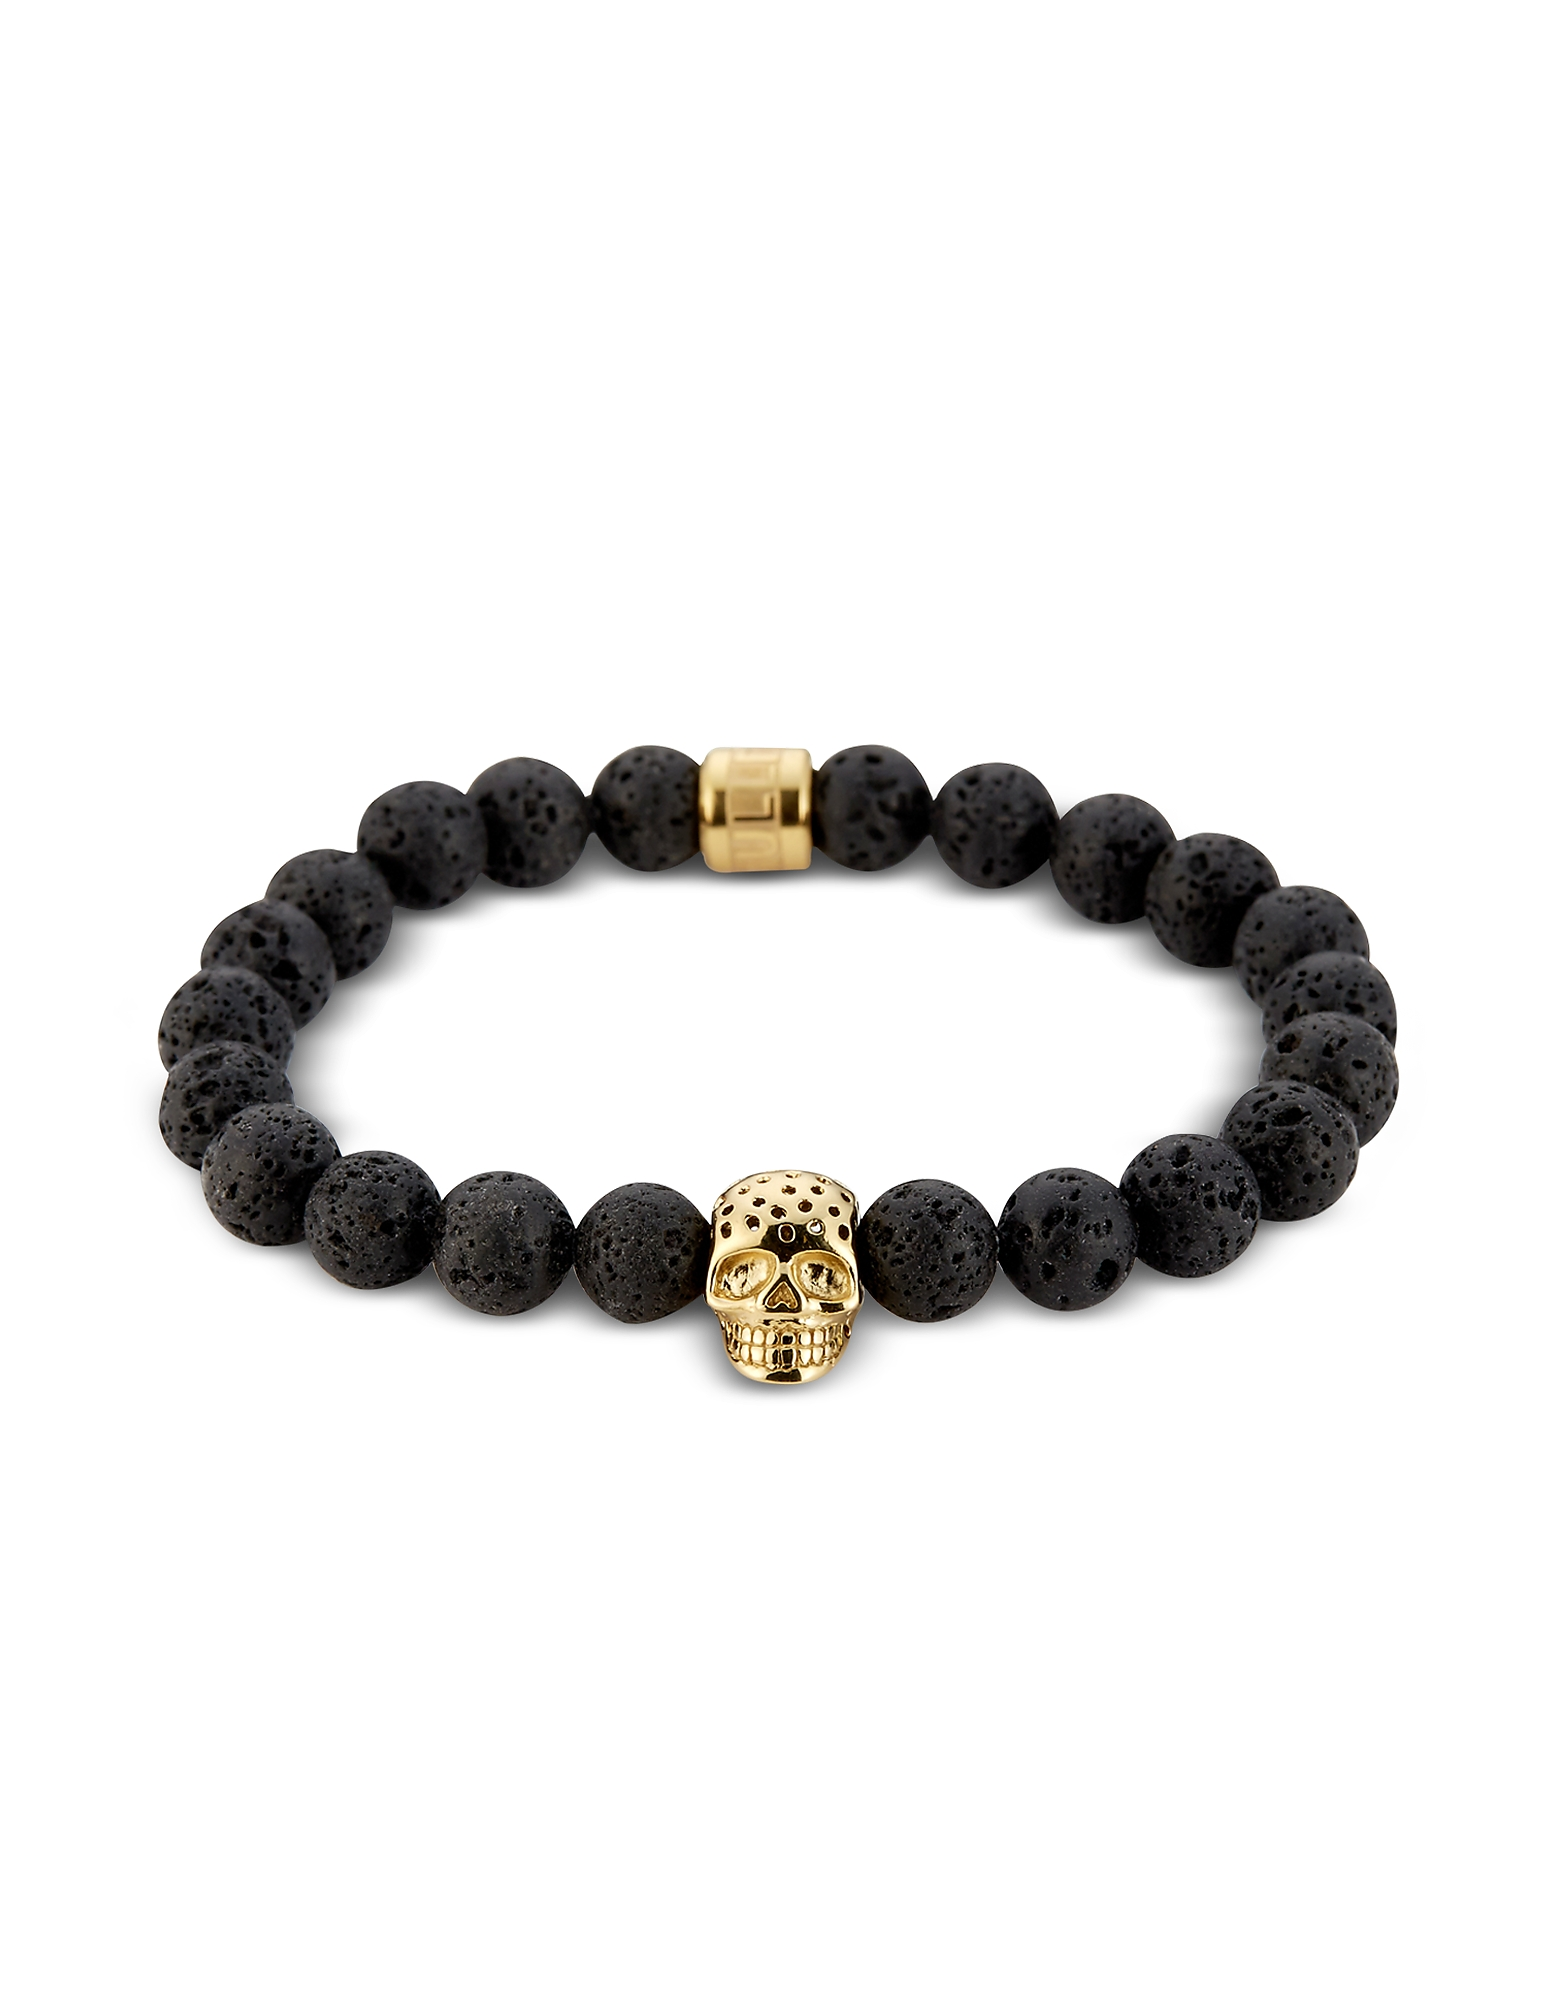 Lavastone & Perforated Gold Skull Charm Bracelet